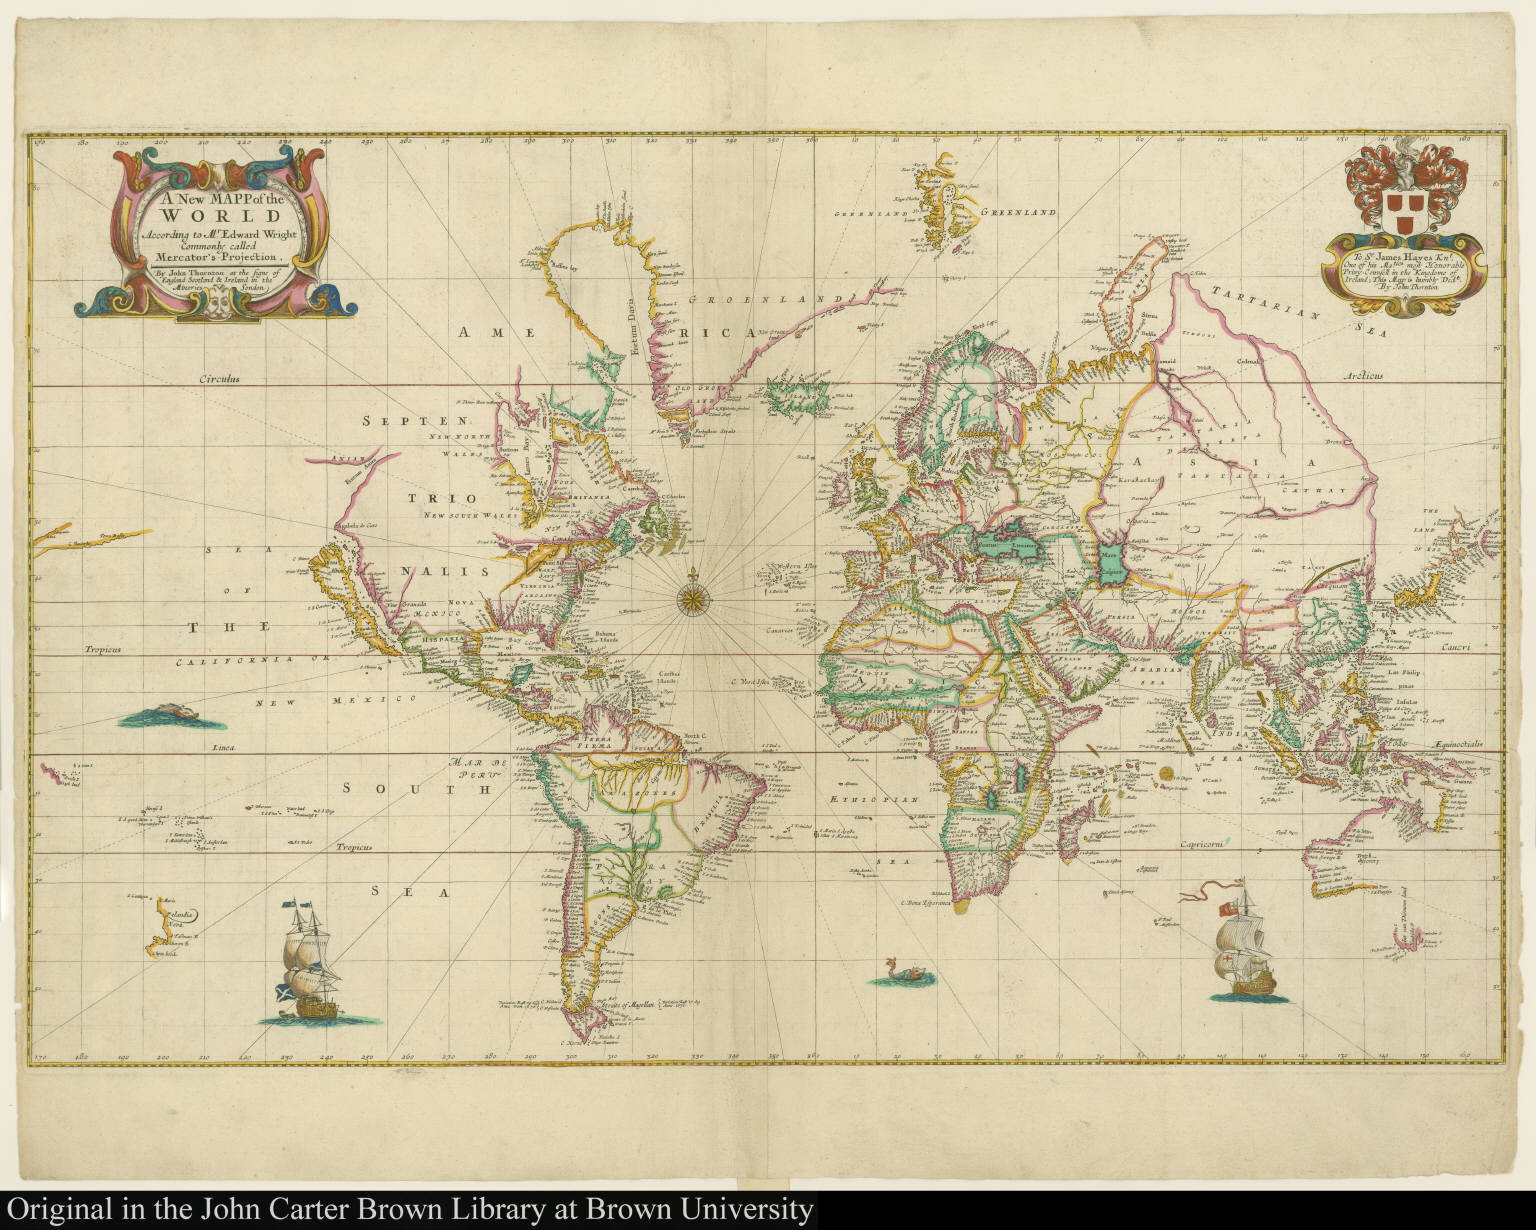 A New Mapp of the World According to Mr. Edward Wright Commonly called Mercator's-Projection.